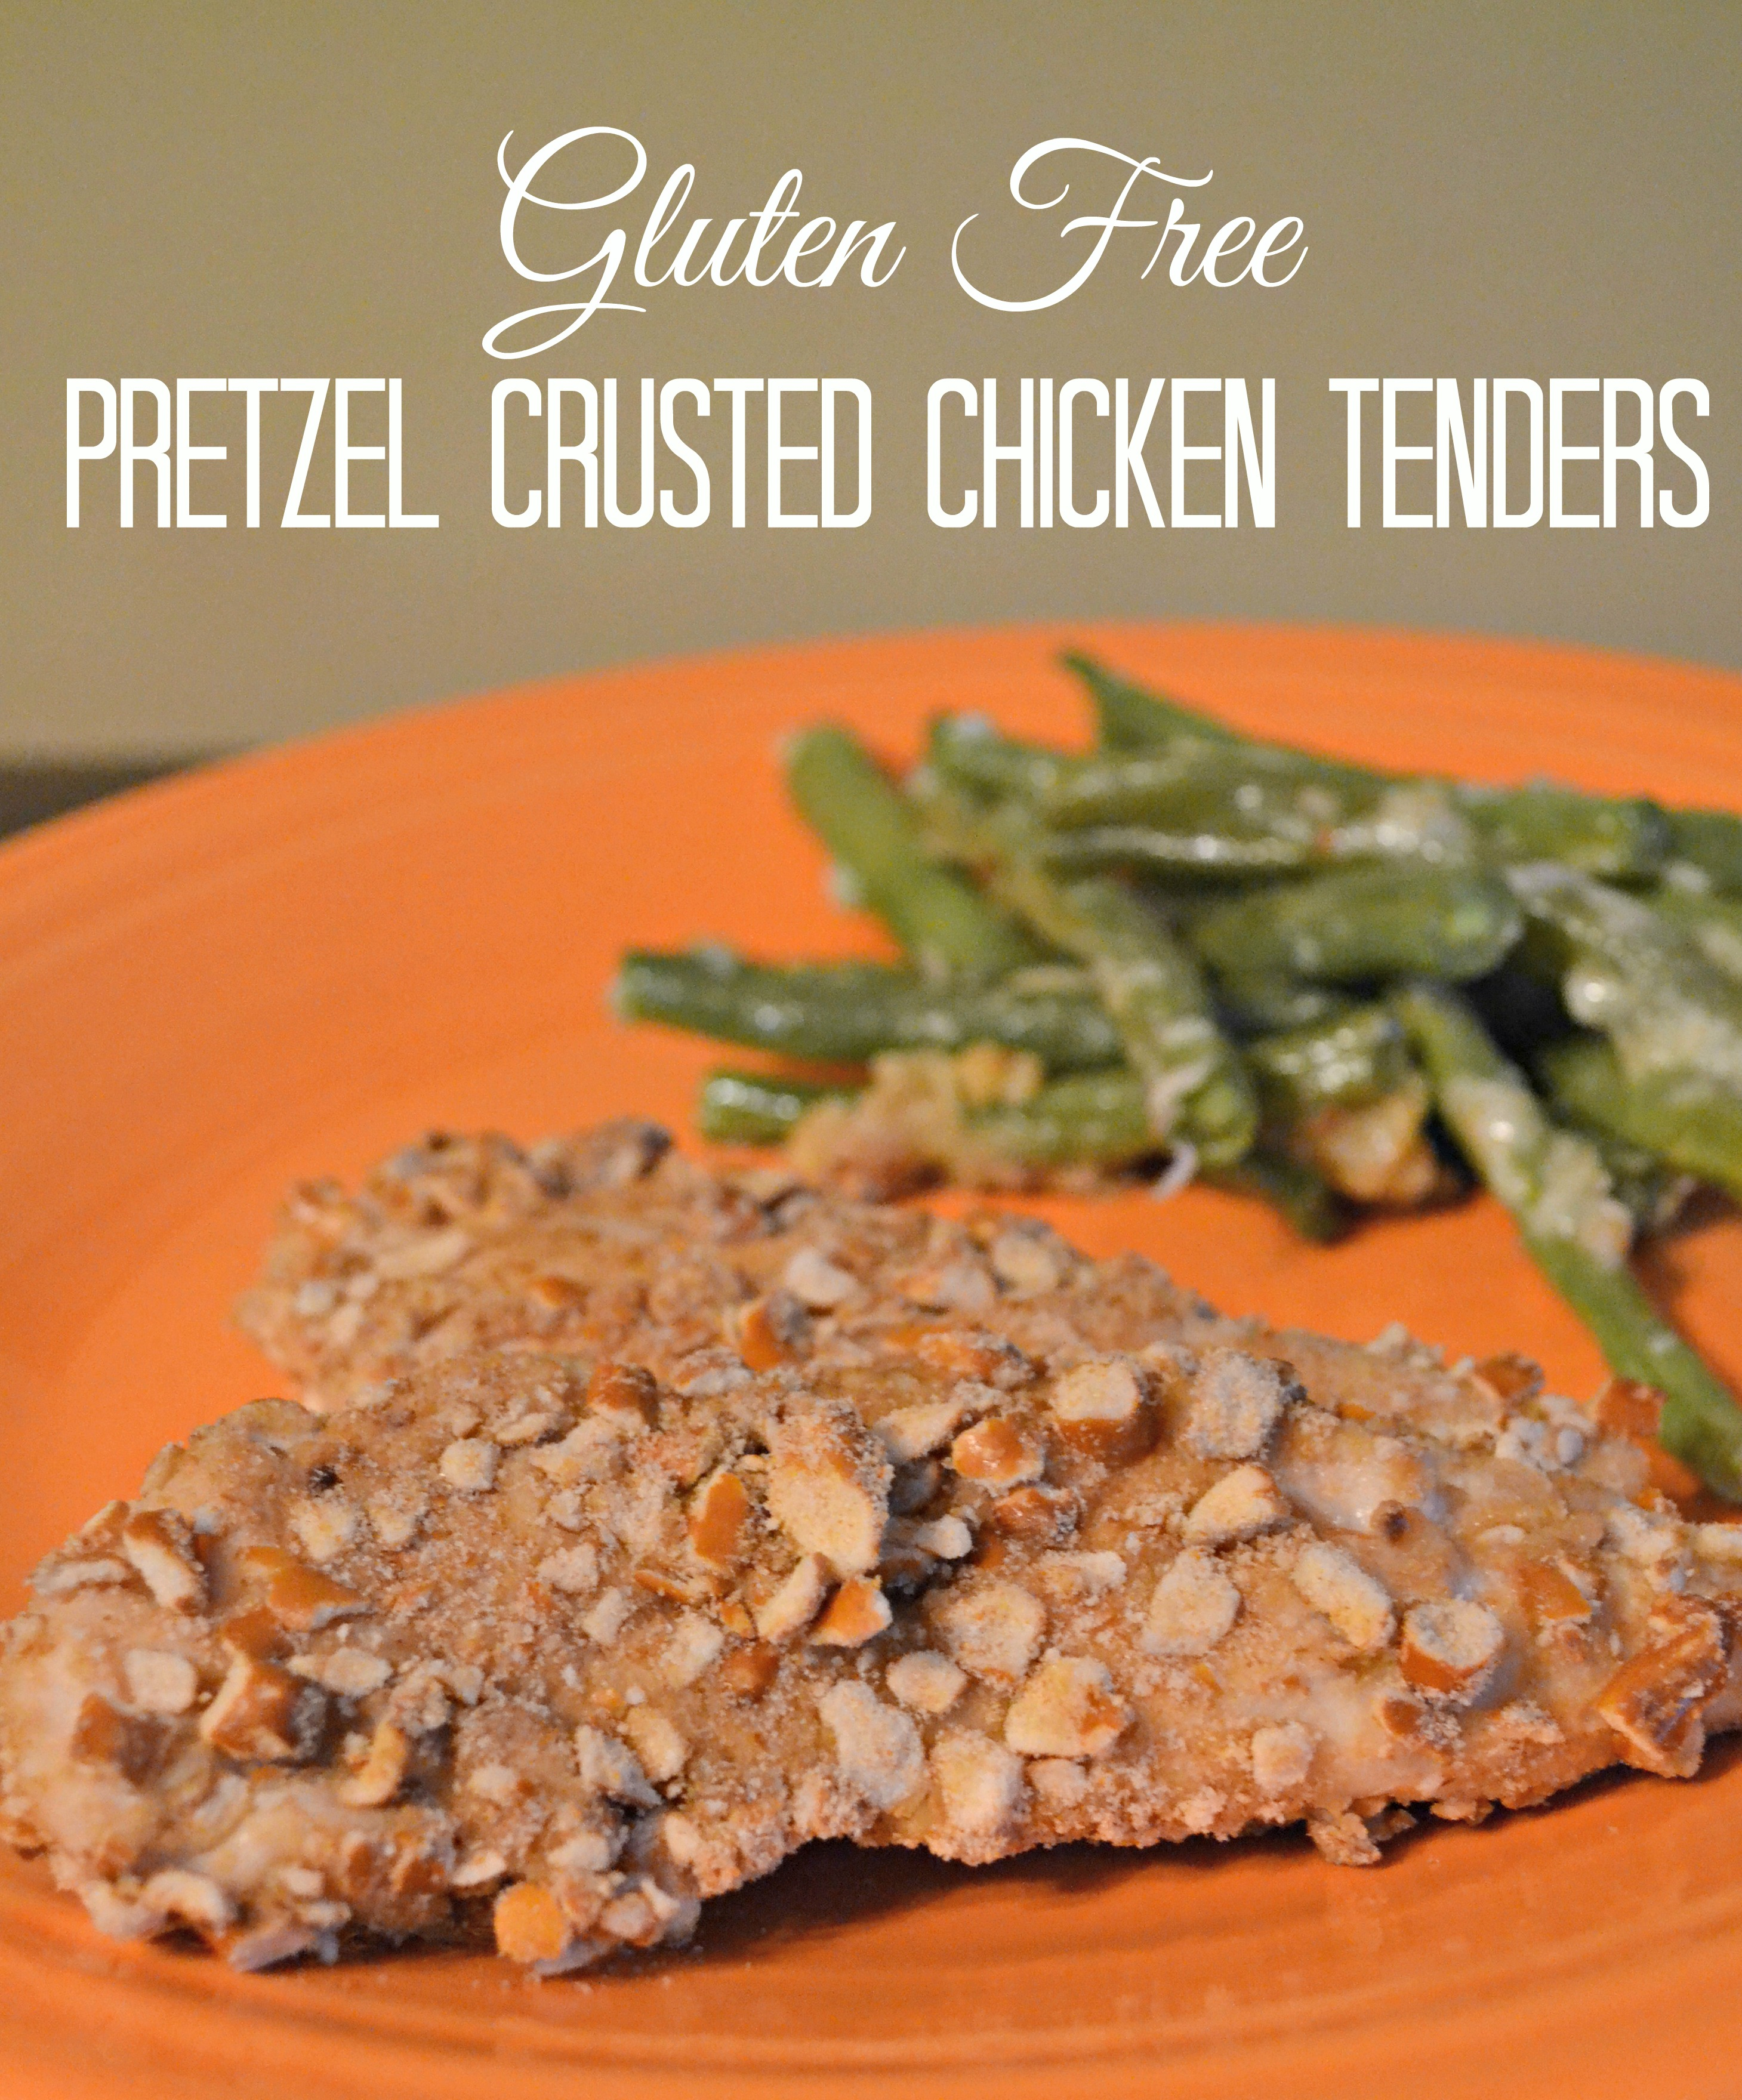 Pretzel Crusted Chicken Tenders – Cooking Gluten Free with Pick 'n Save